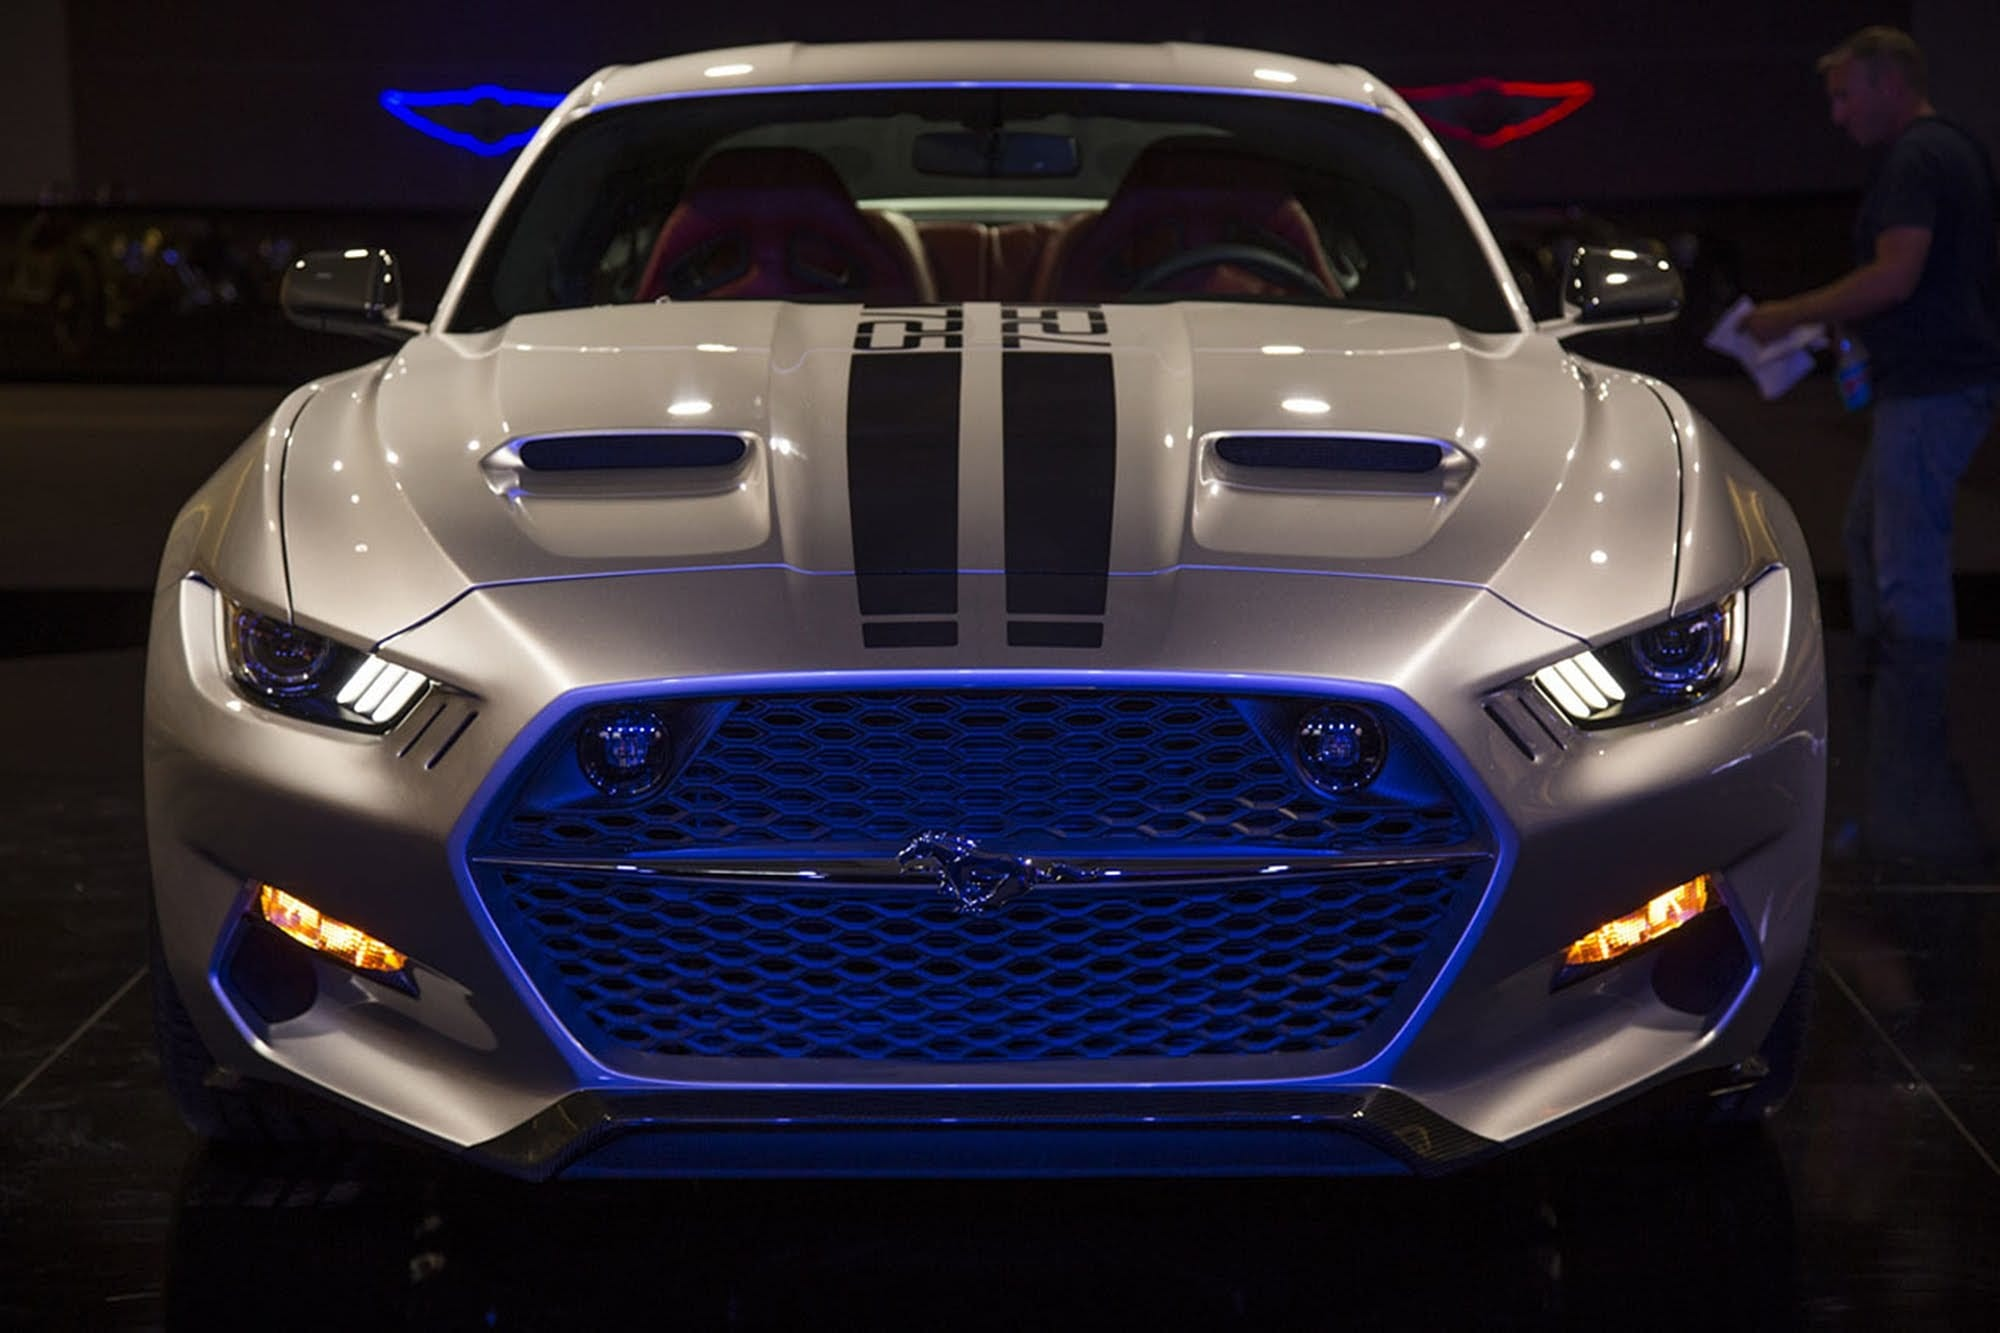 2015 Ford Mustang Galpin Rocket A 725 1